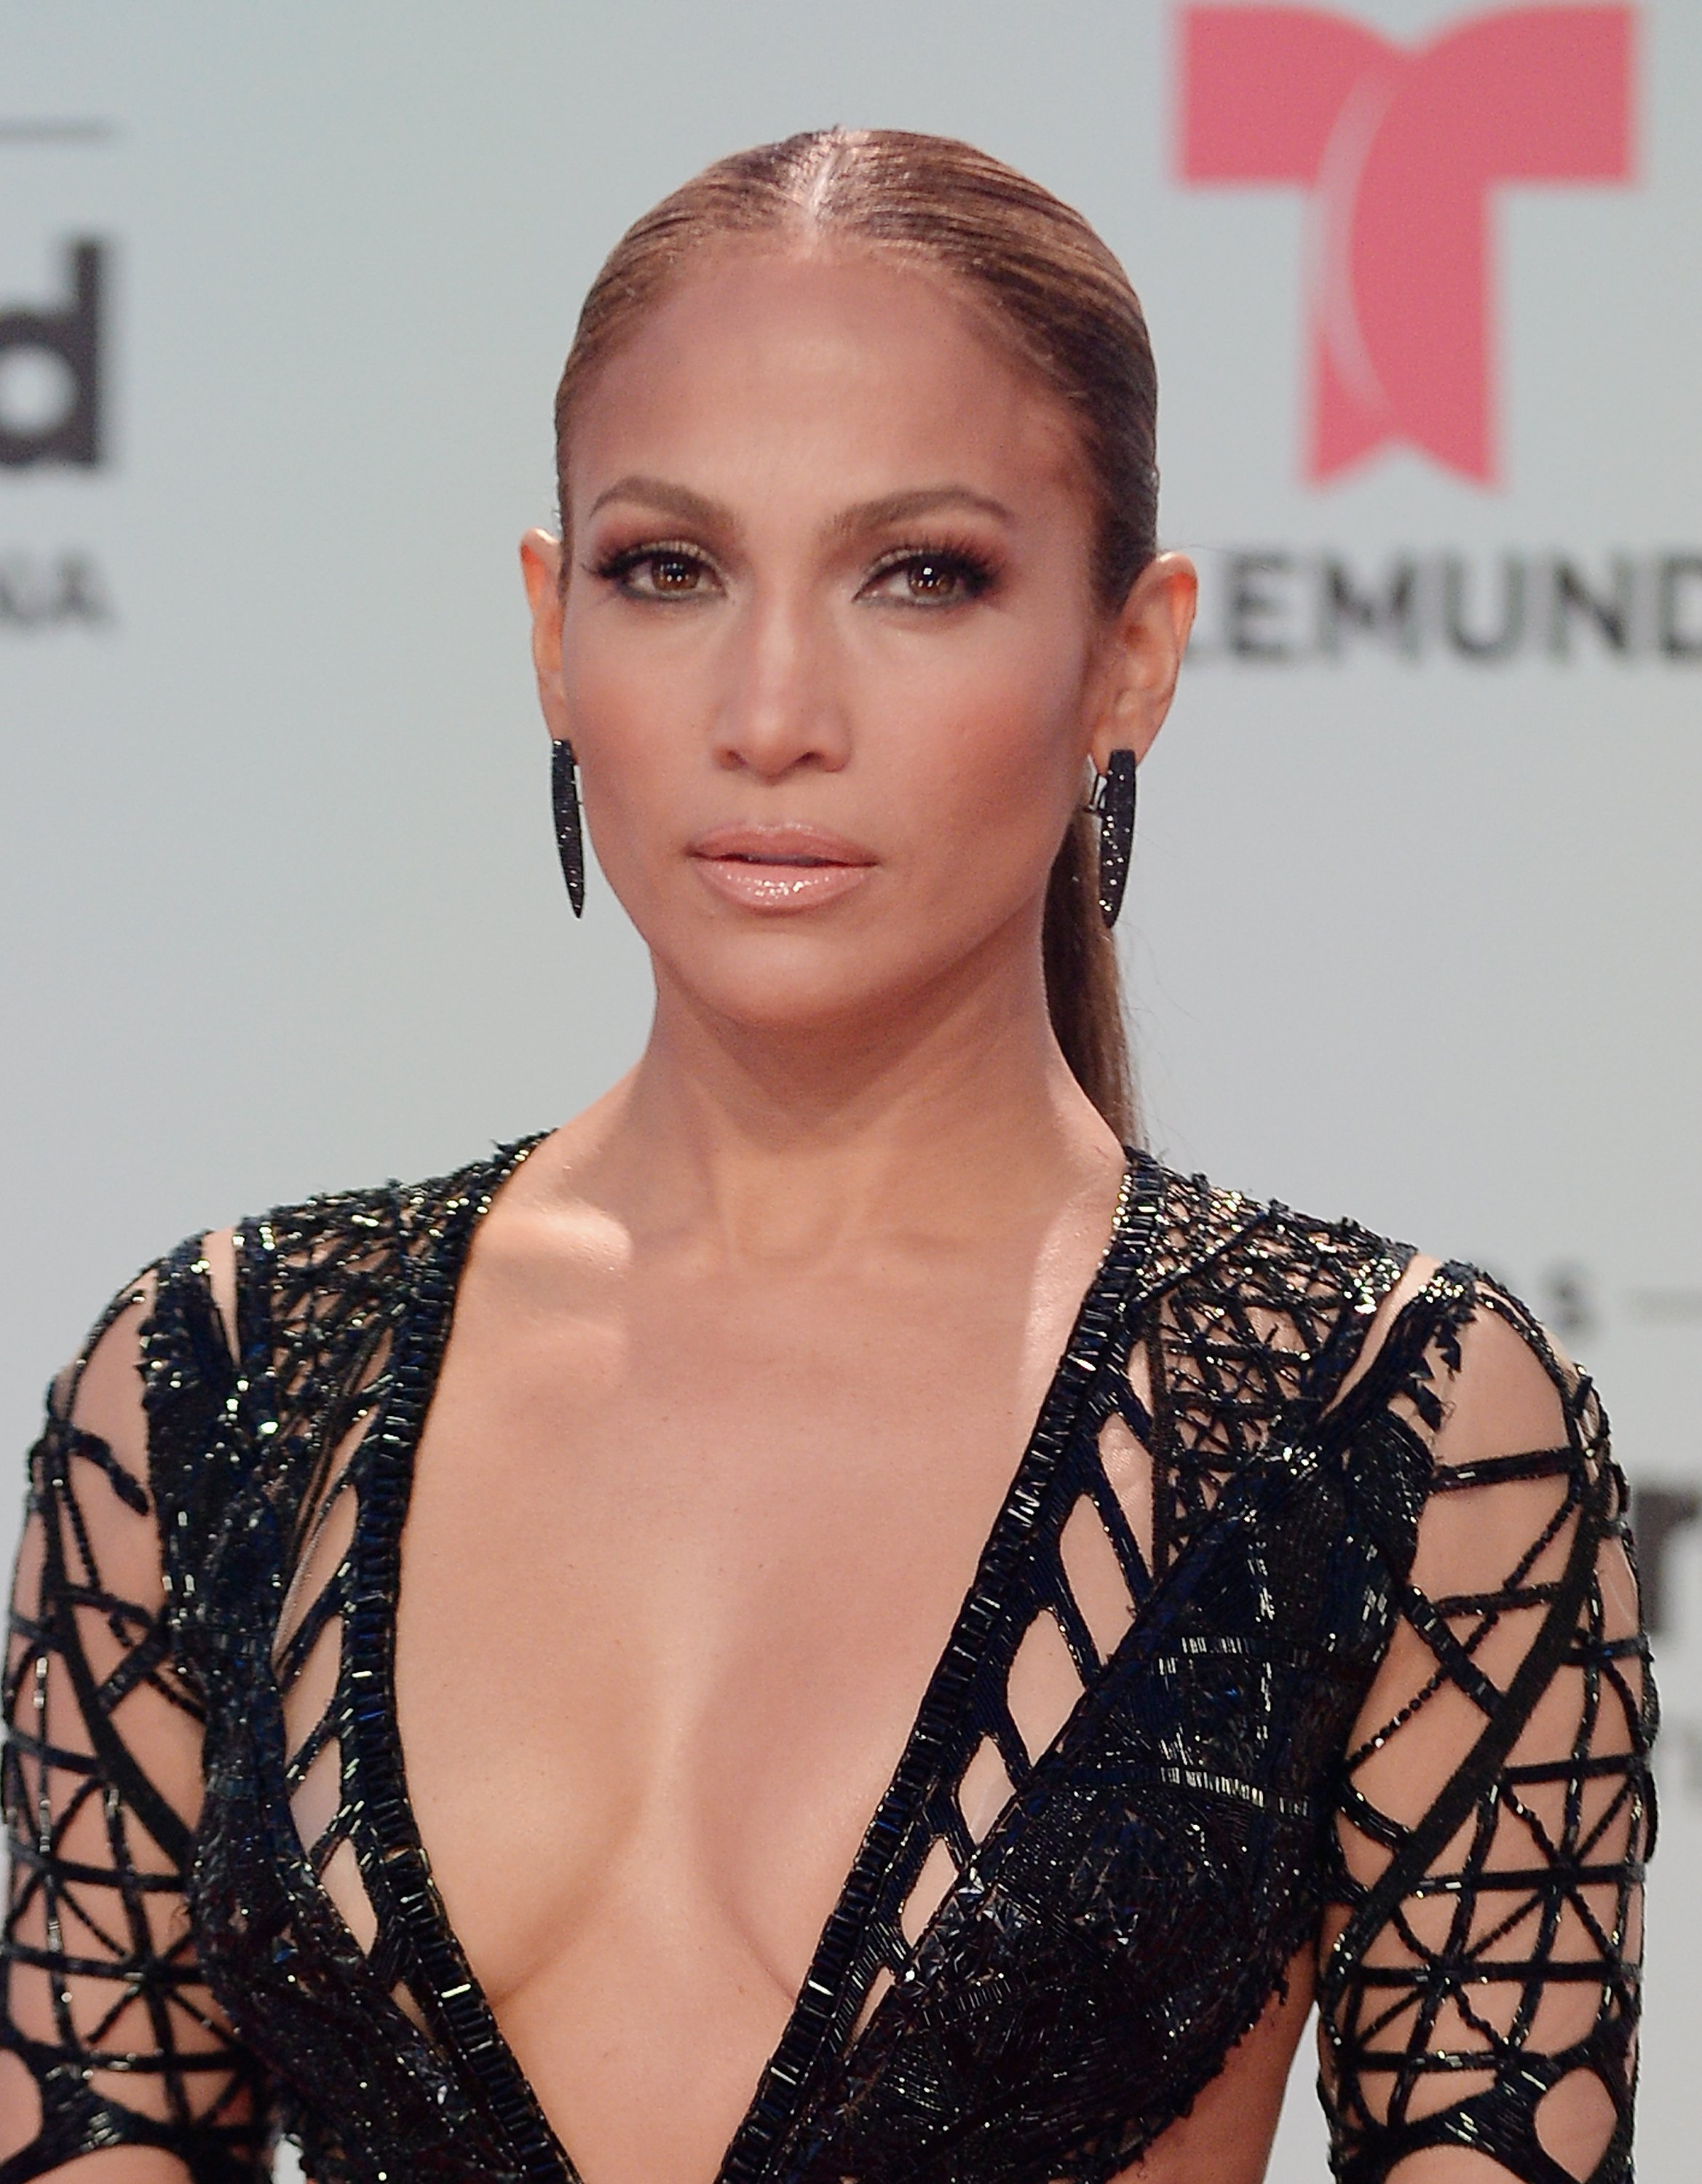 Jennifer Lopez at the Billboard Latin Music Awards at Watsco Center on April 27, 2017 in Miami, Florida.| Source: Getty Images